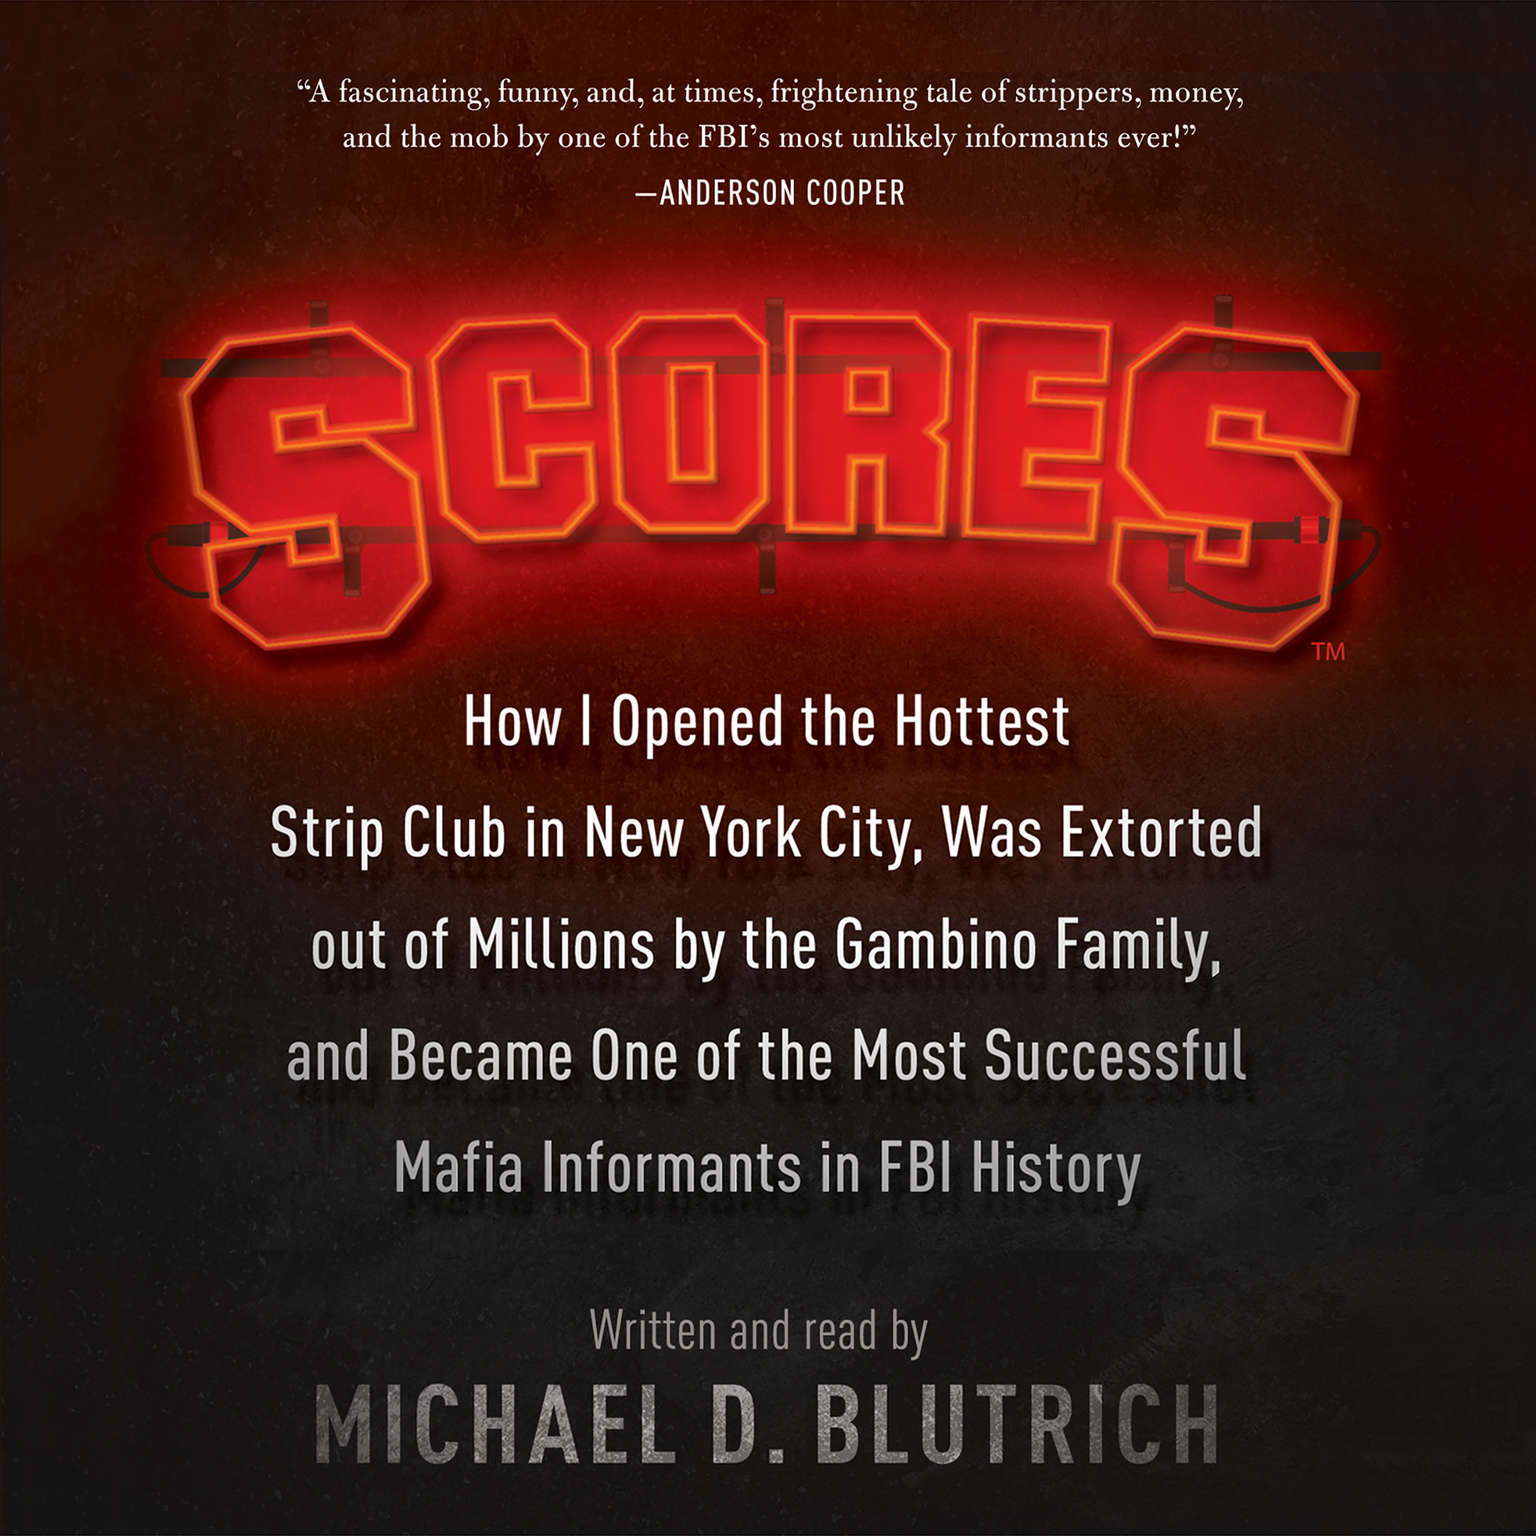 Printable Scores: How I Opened the Hottest Strip Club in New York City, Was Extorted out of Millions by the Gambino Family, and Became One of the Most Successful Mafia Informants in FBI History Audiobook Cover Art